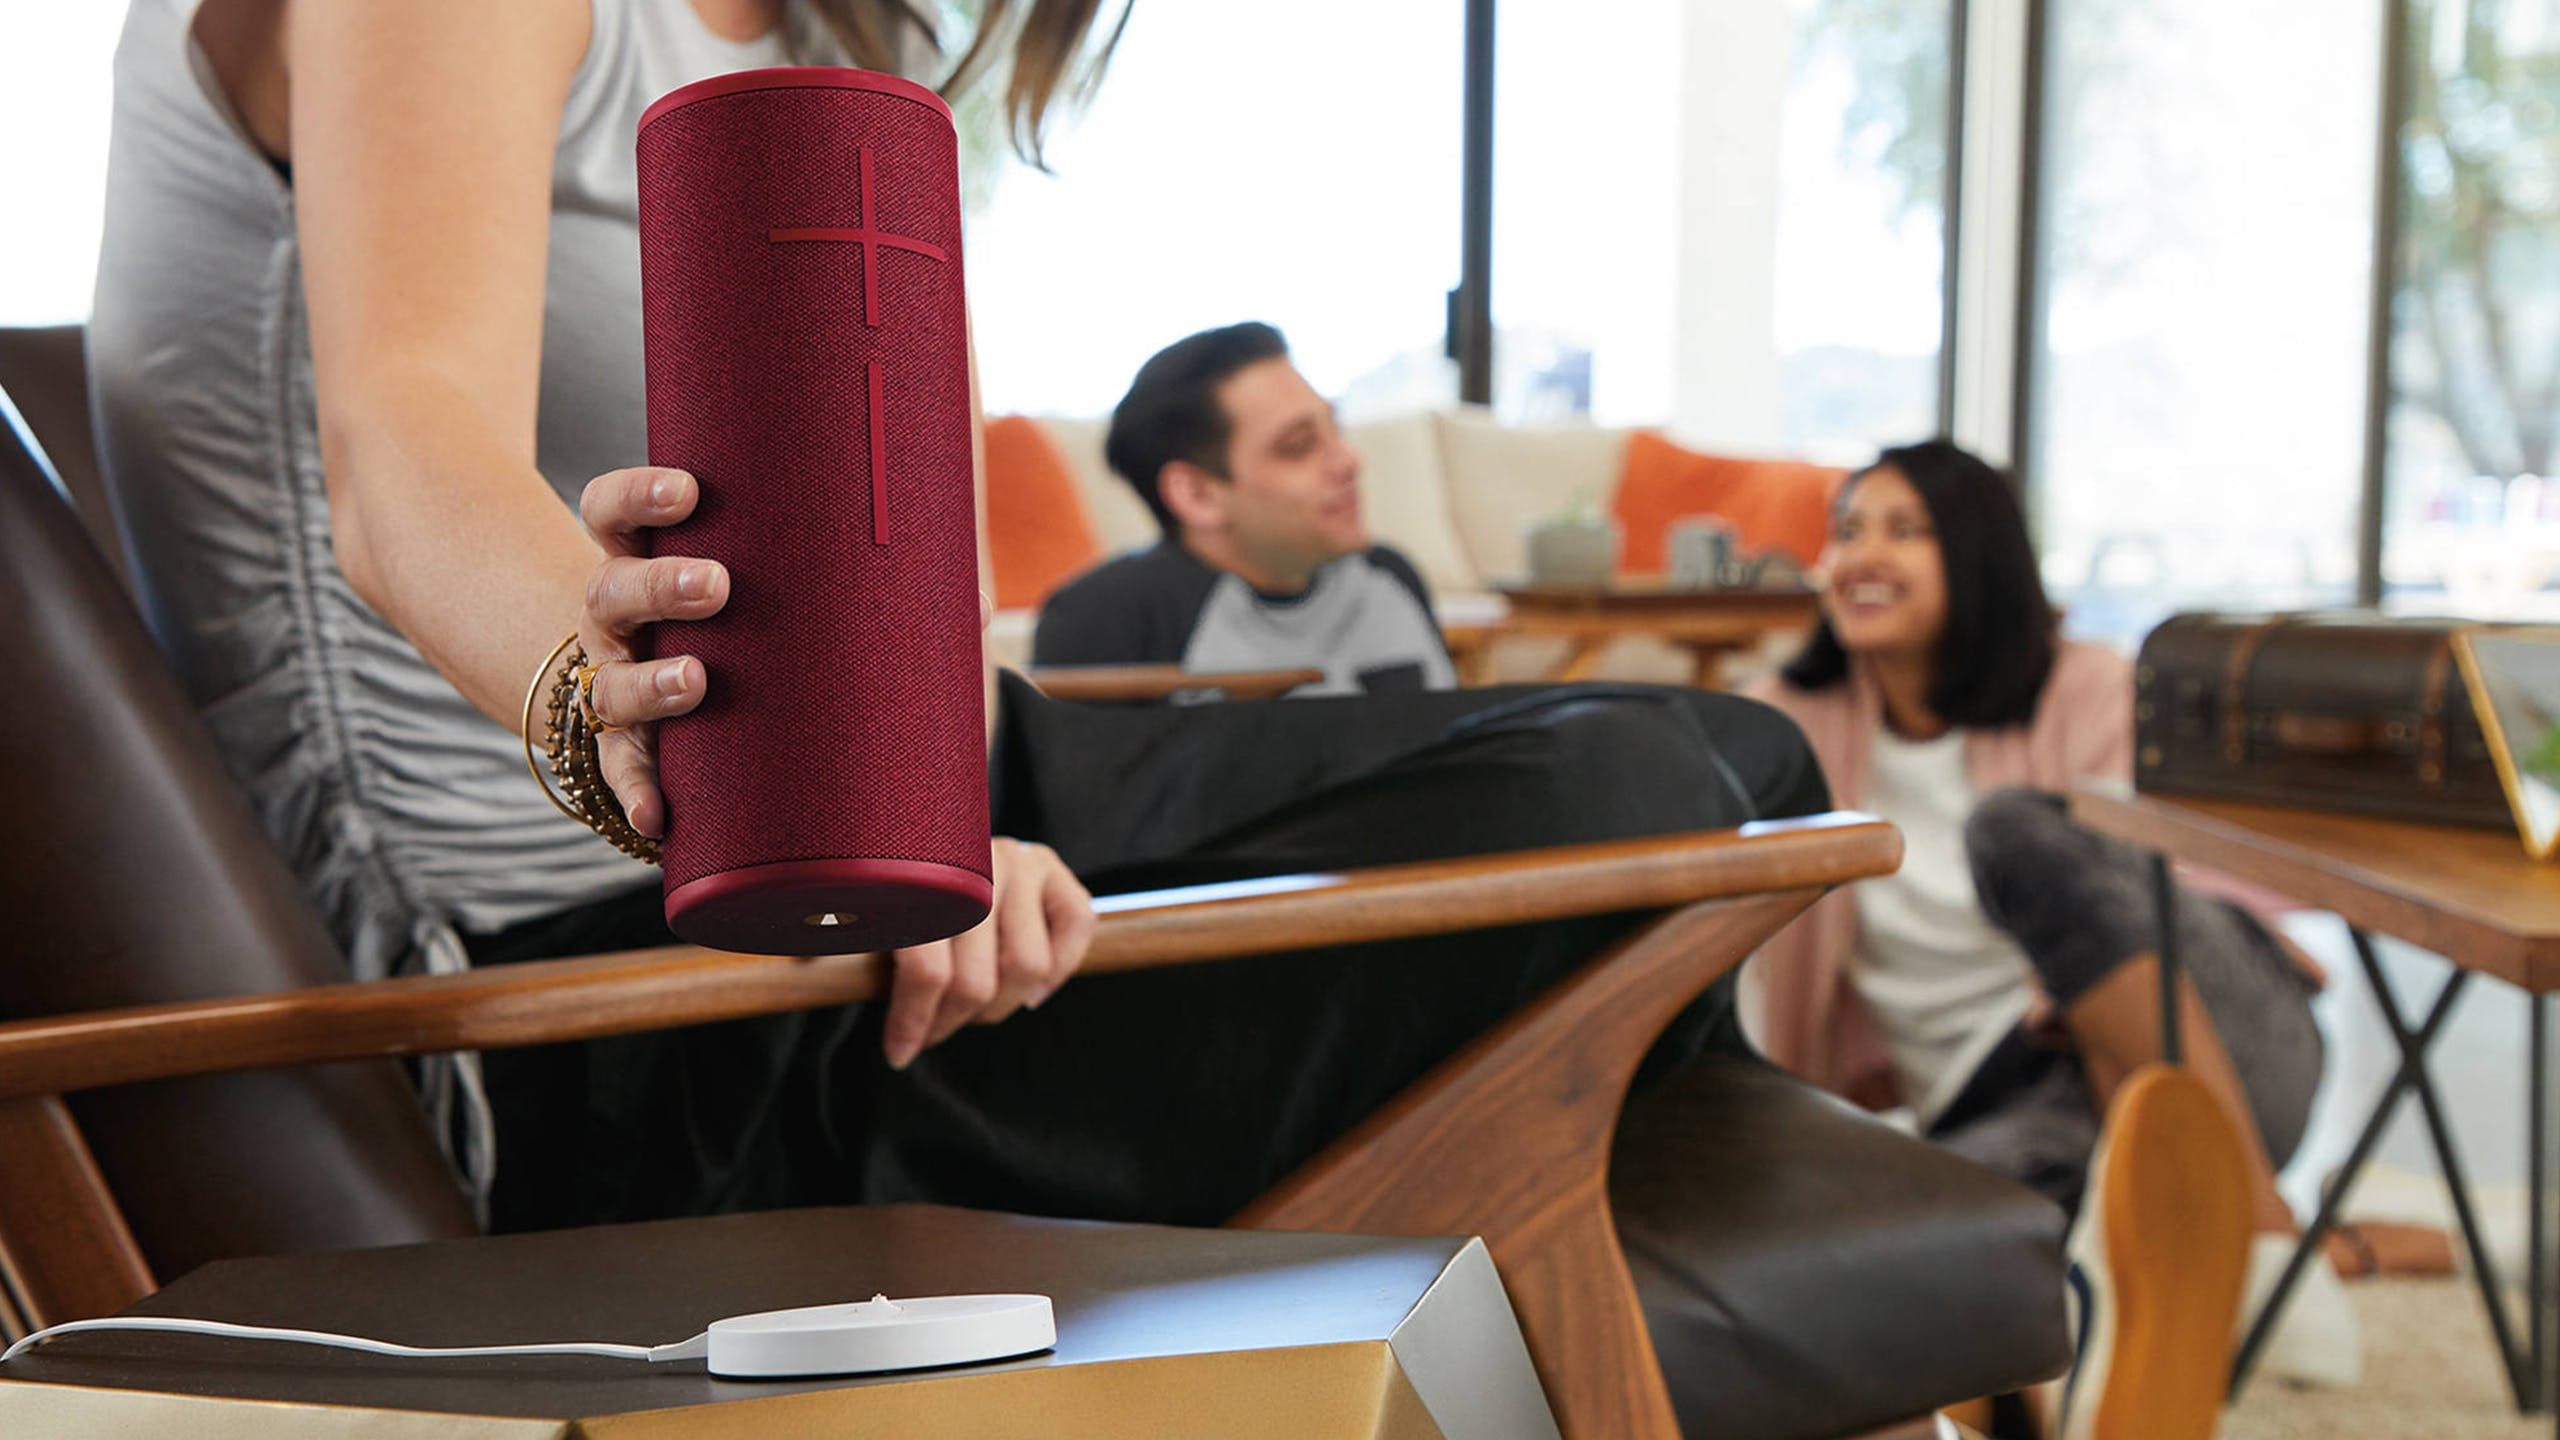 Ultimate Ears MEGABOOM 3 Bluetooth Speaker - Sunset Red